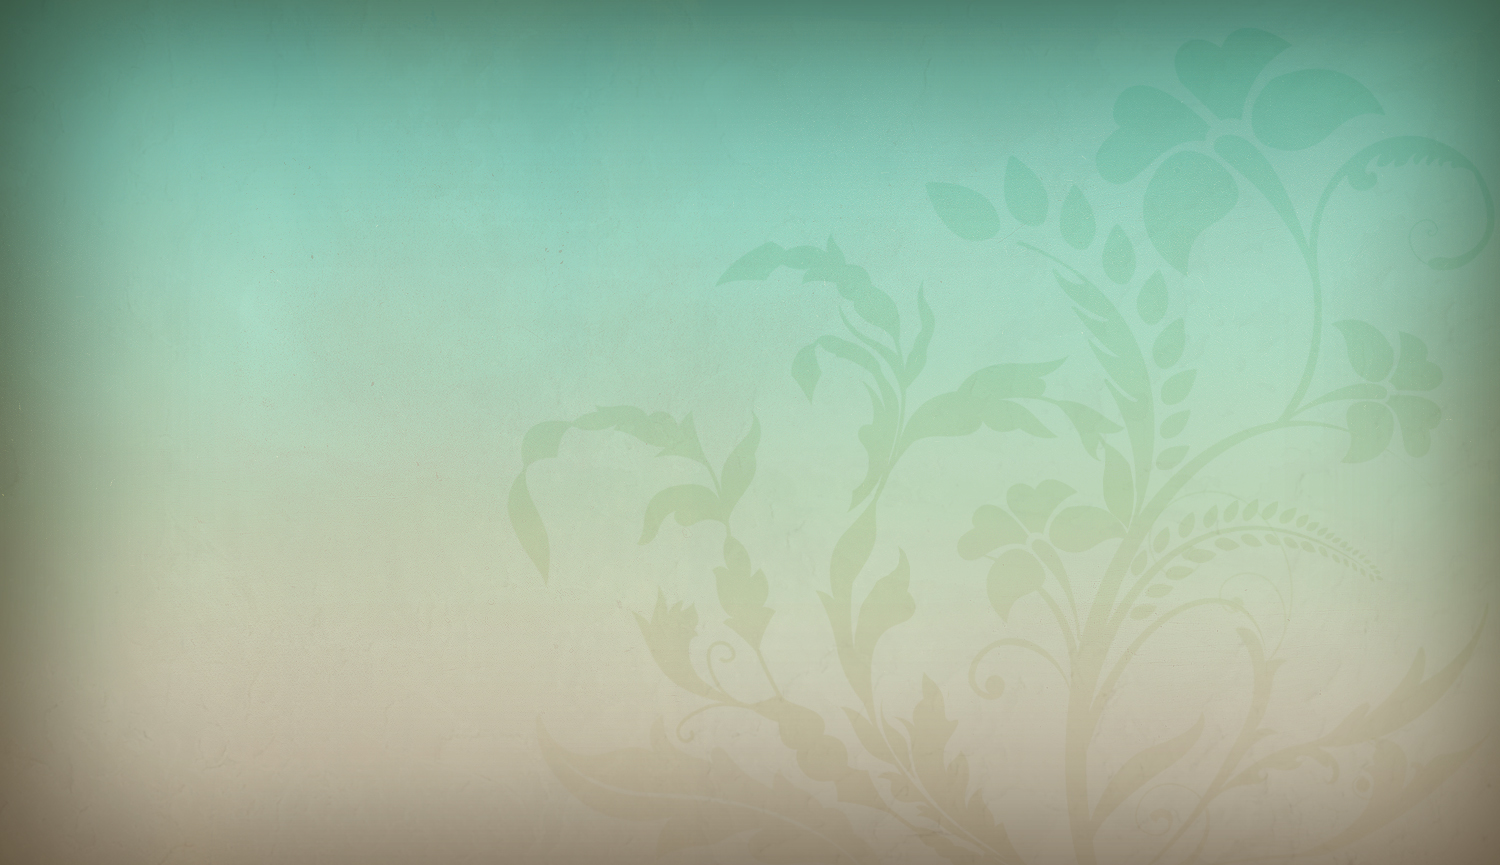 blue to light tan overlaid with floral elements and even some 1500x865